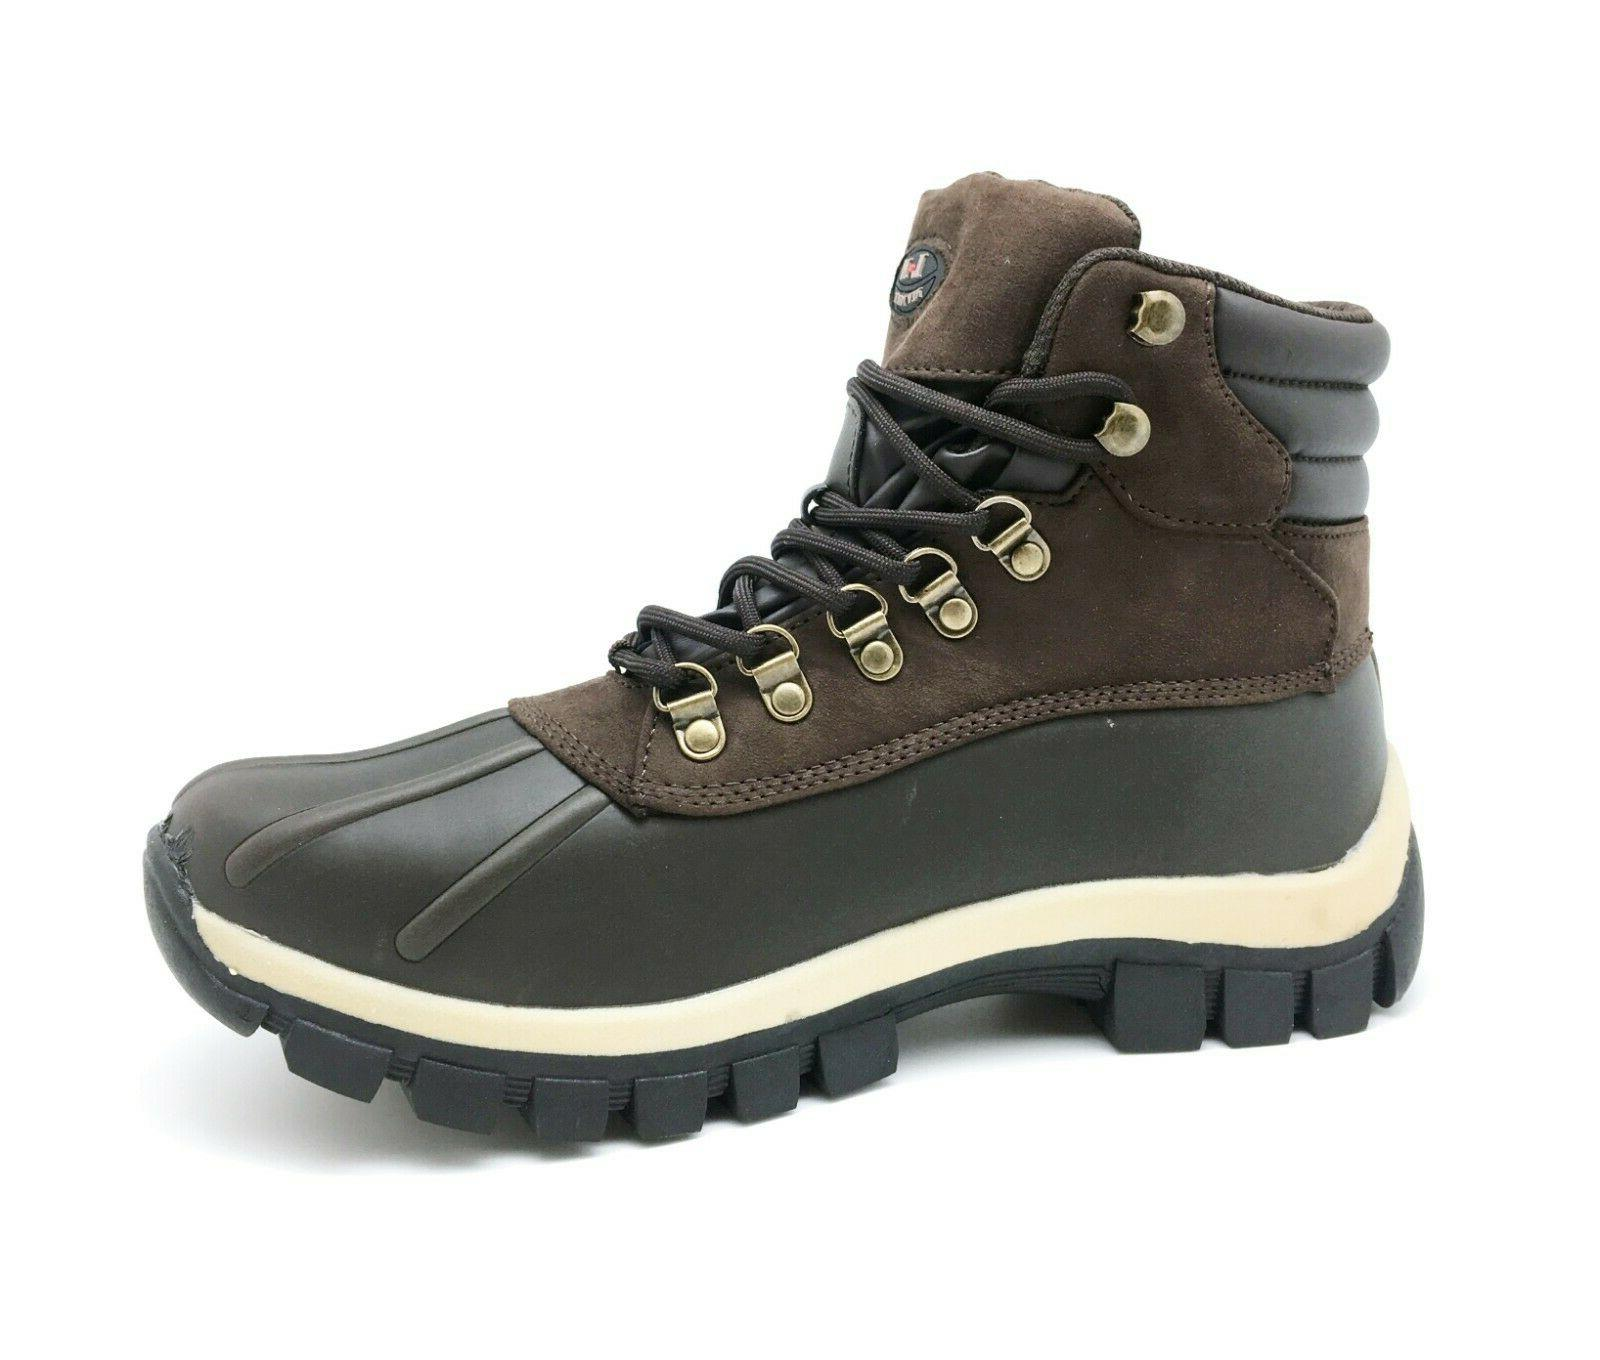 LM Snow Boots Genuine Leather Waterproof